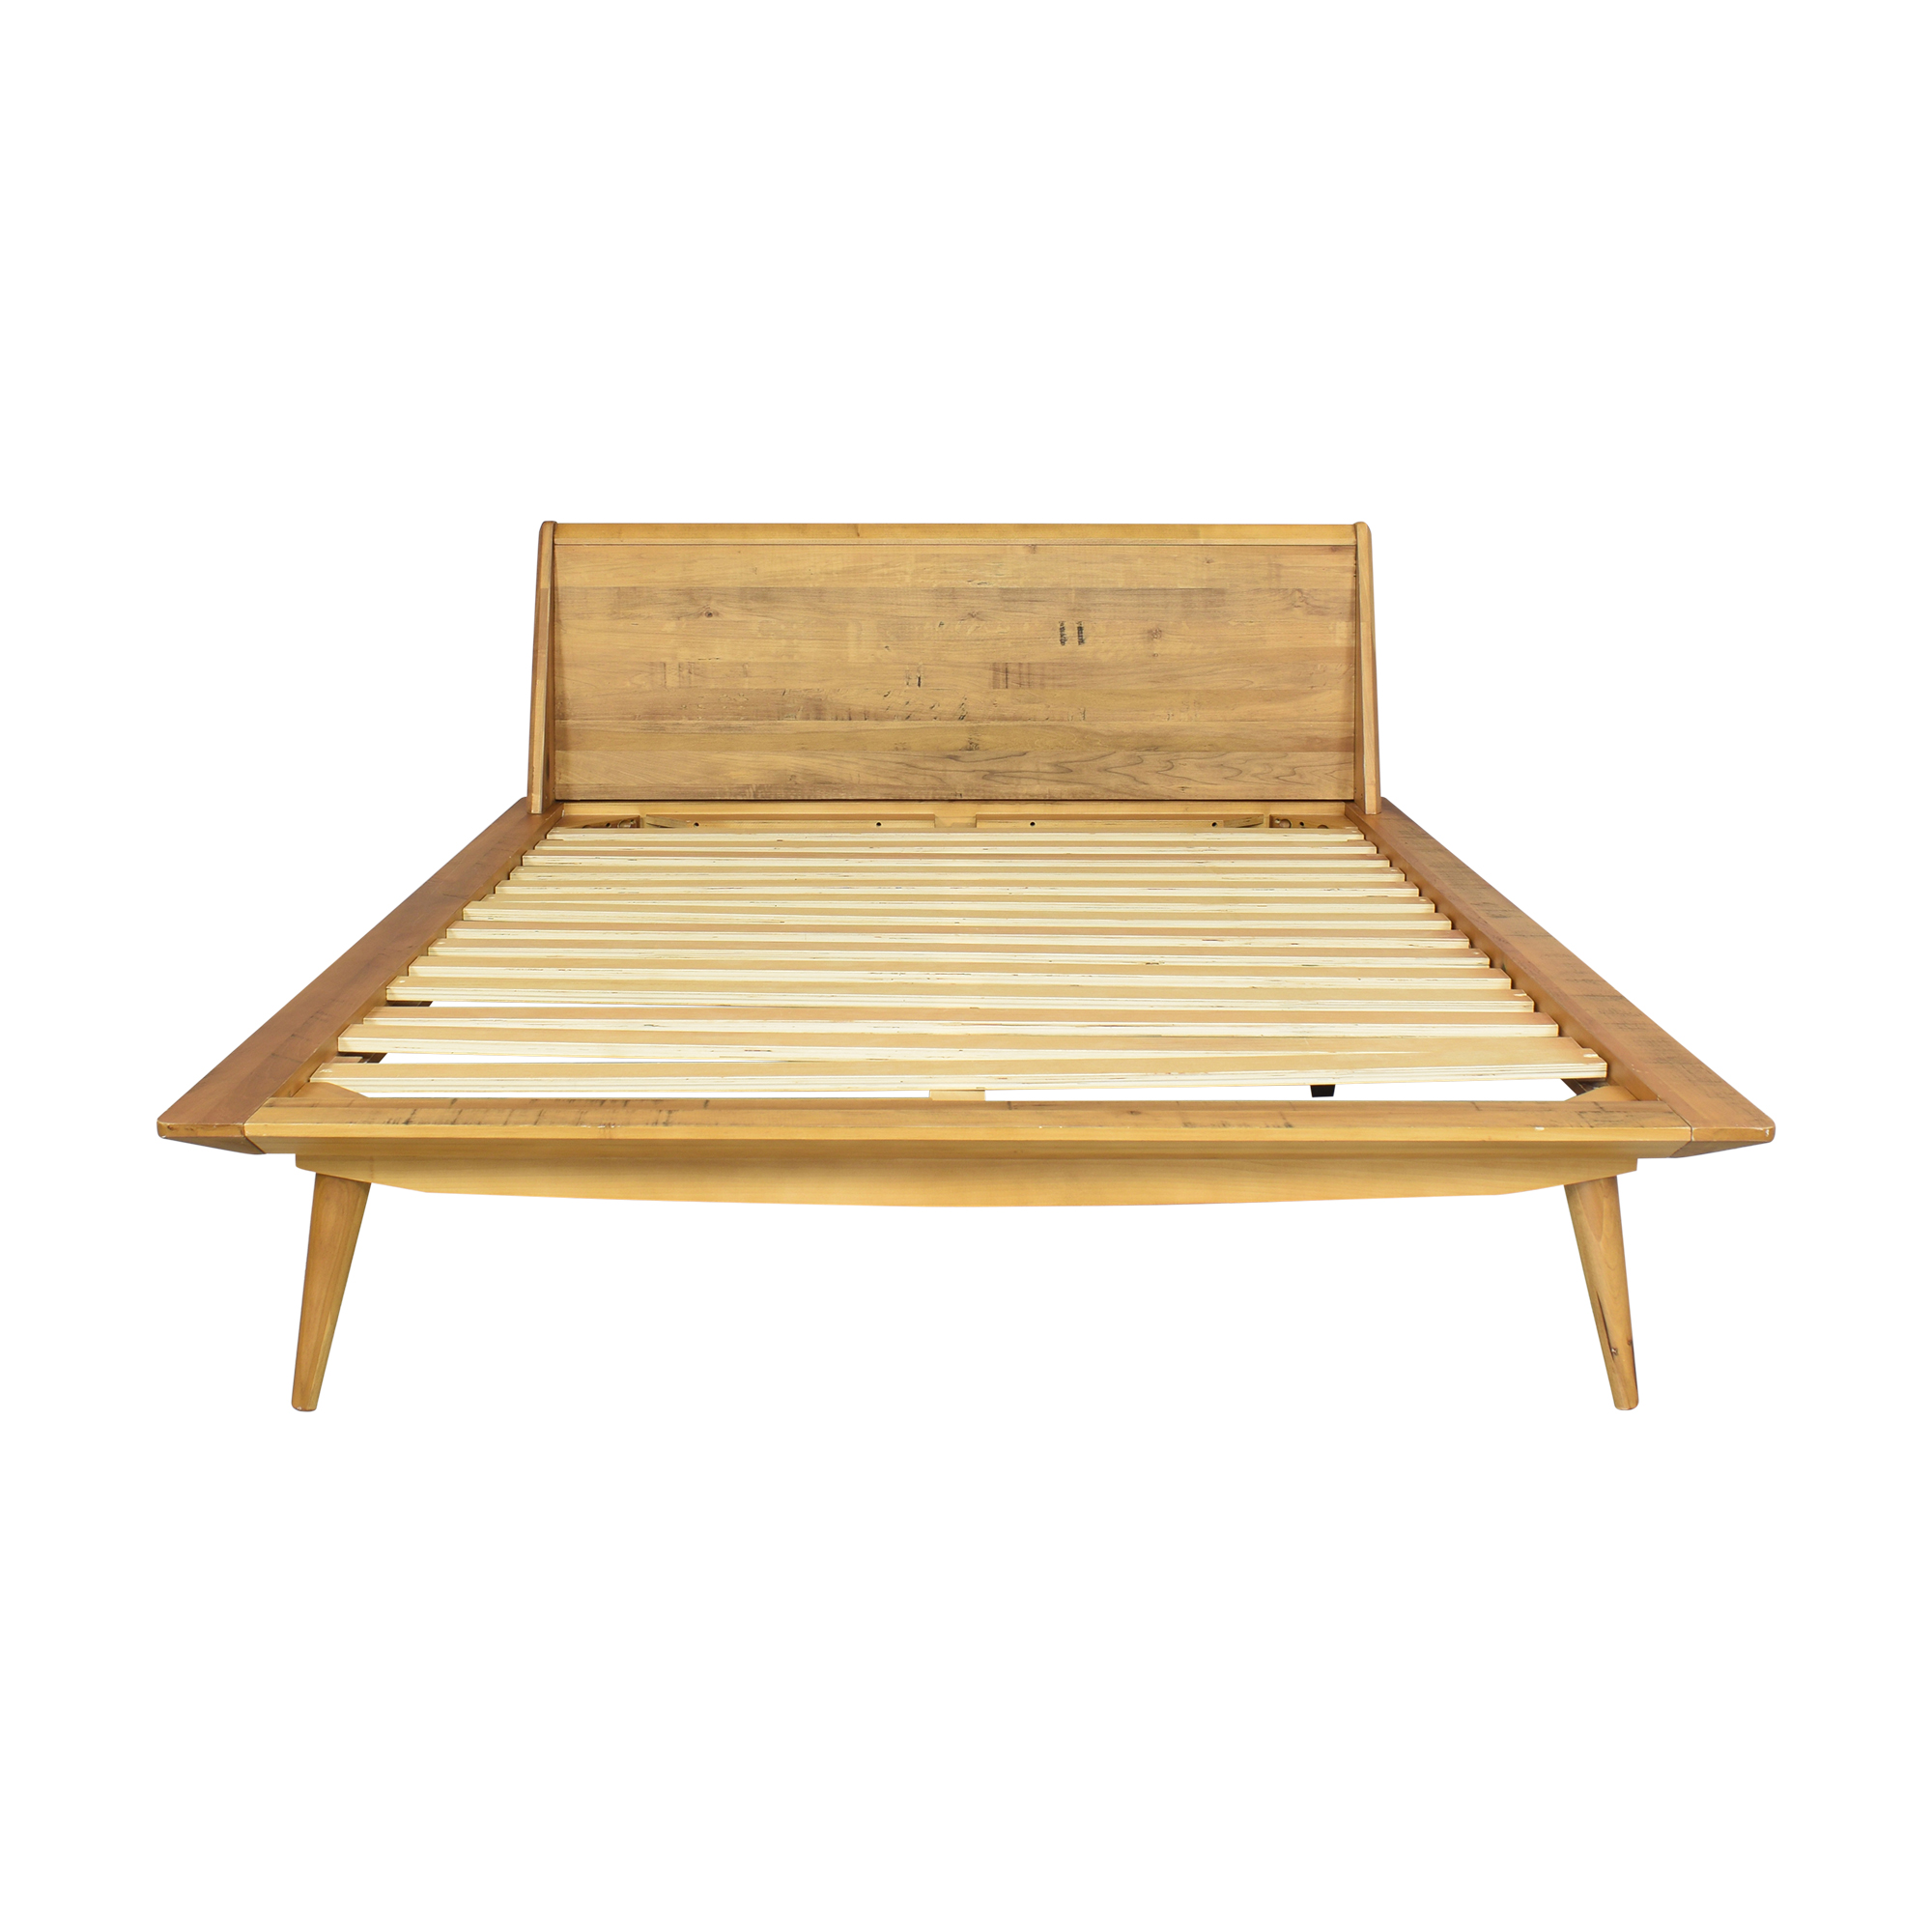 Scandinavian Designs Scandinavian Designs Bolig Queen Bed for sale